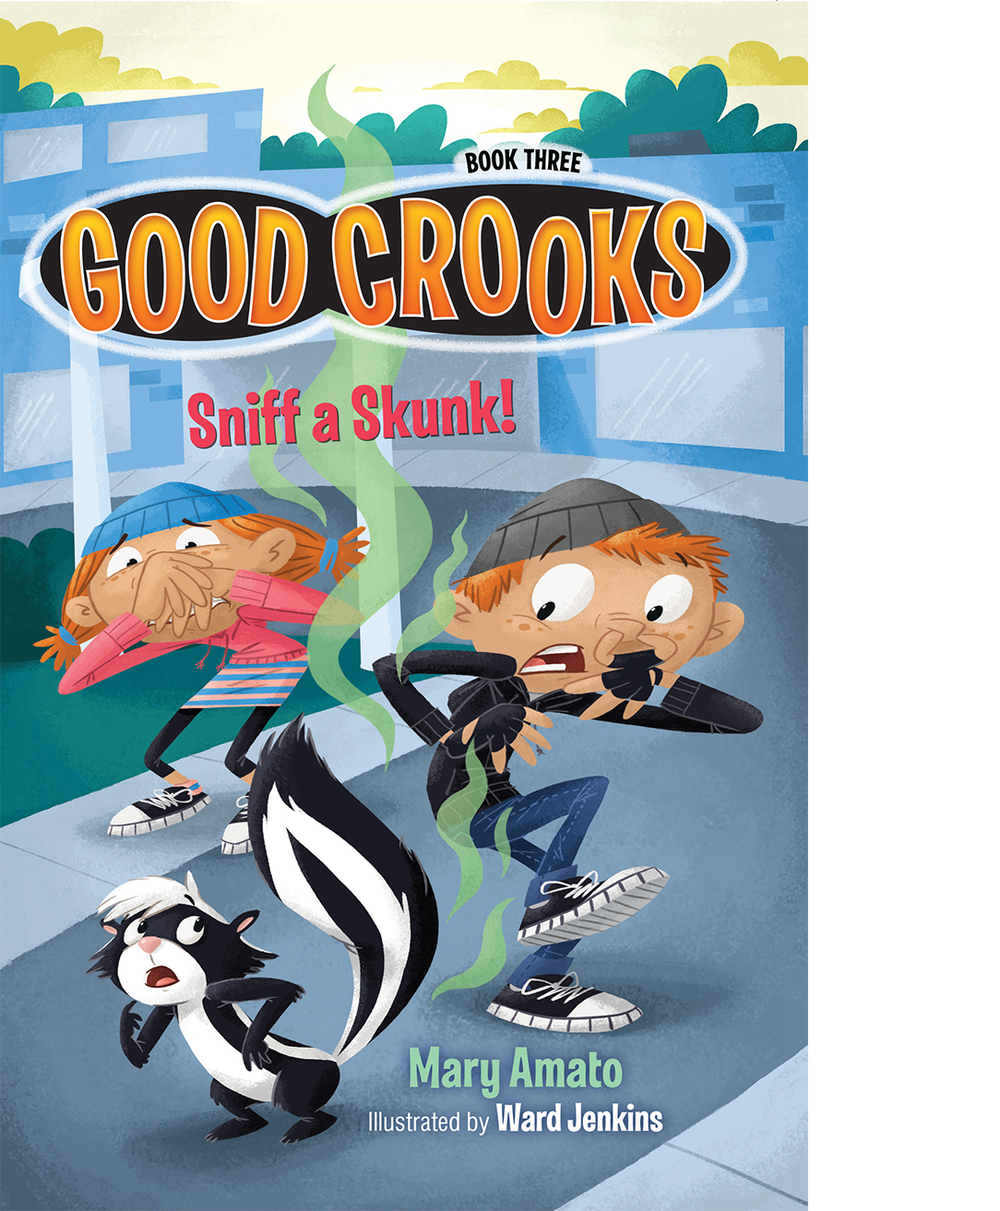 GOOD CROOKS: SNIFF A SKUNK!